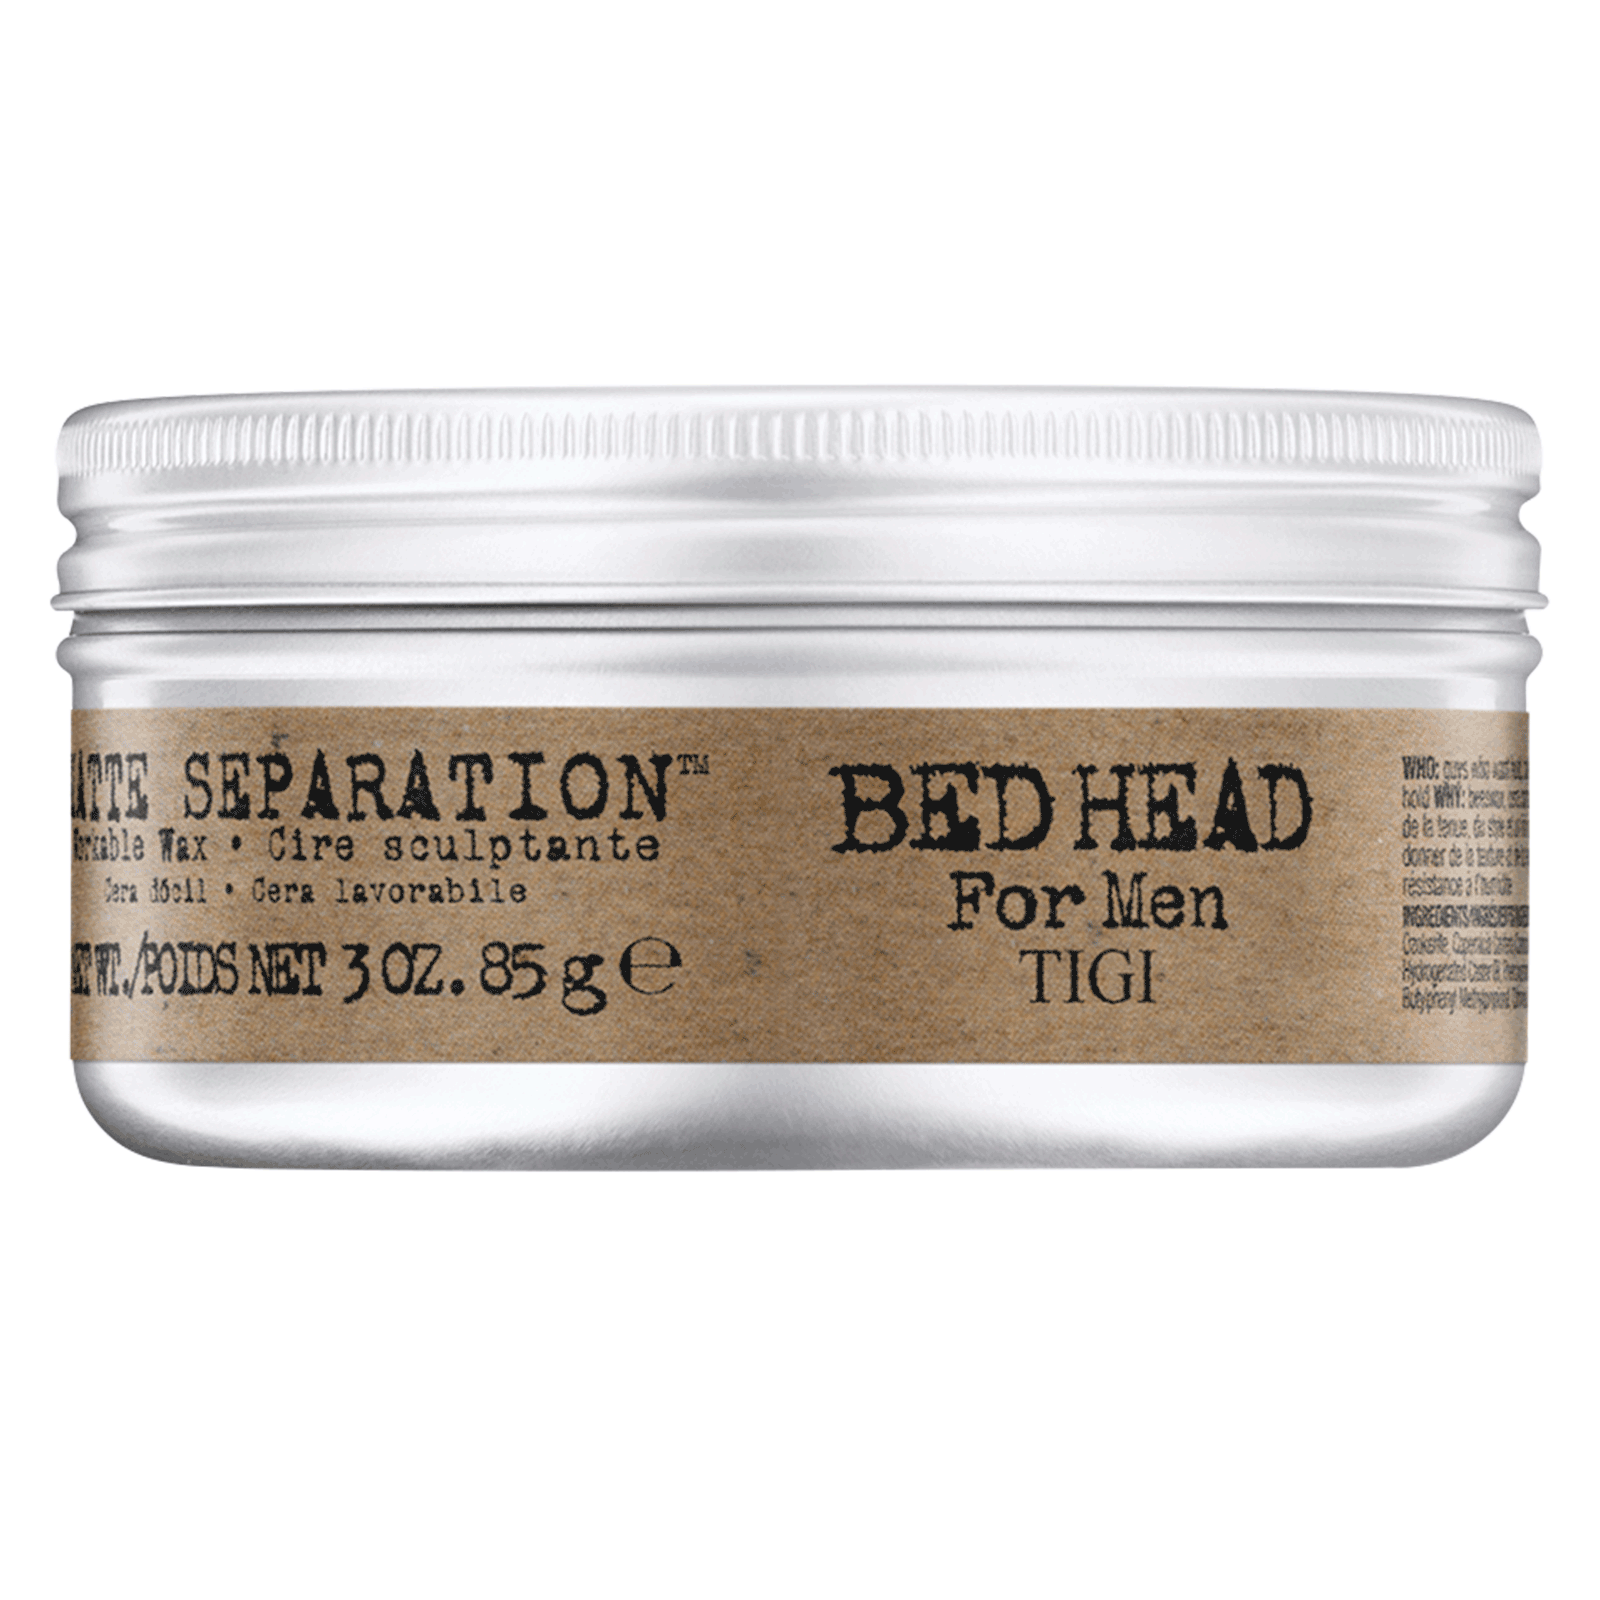 Bed Head for Men Matte Workable Wax